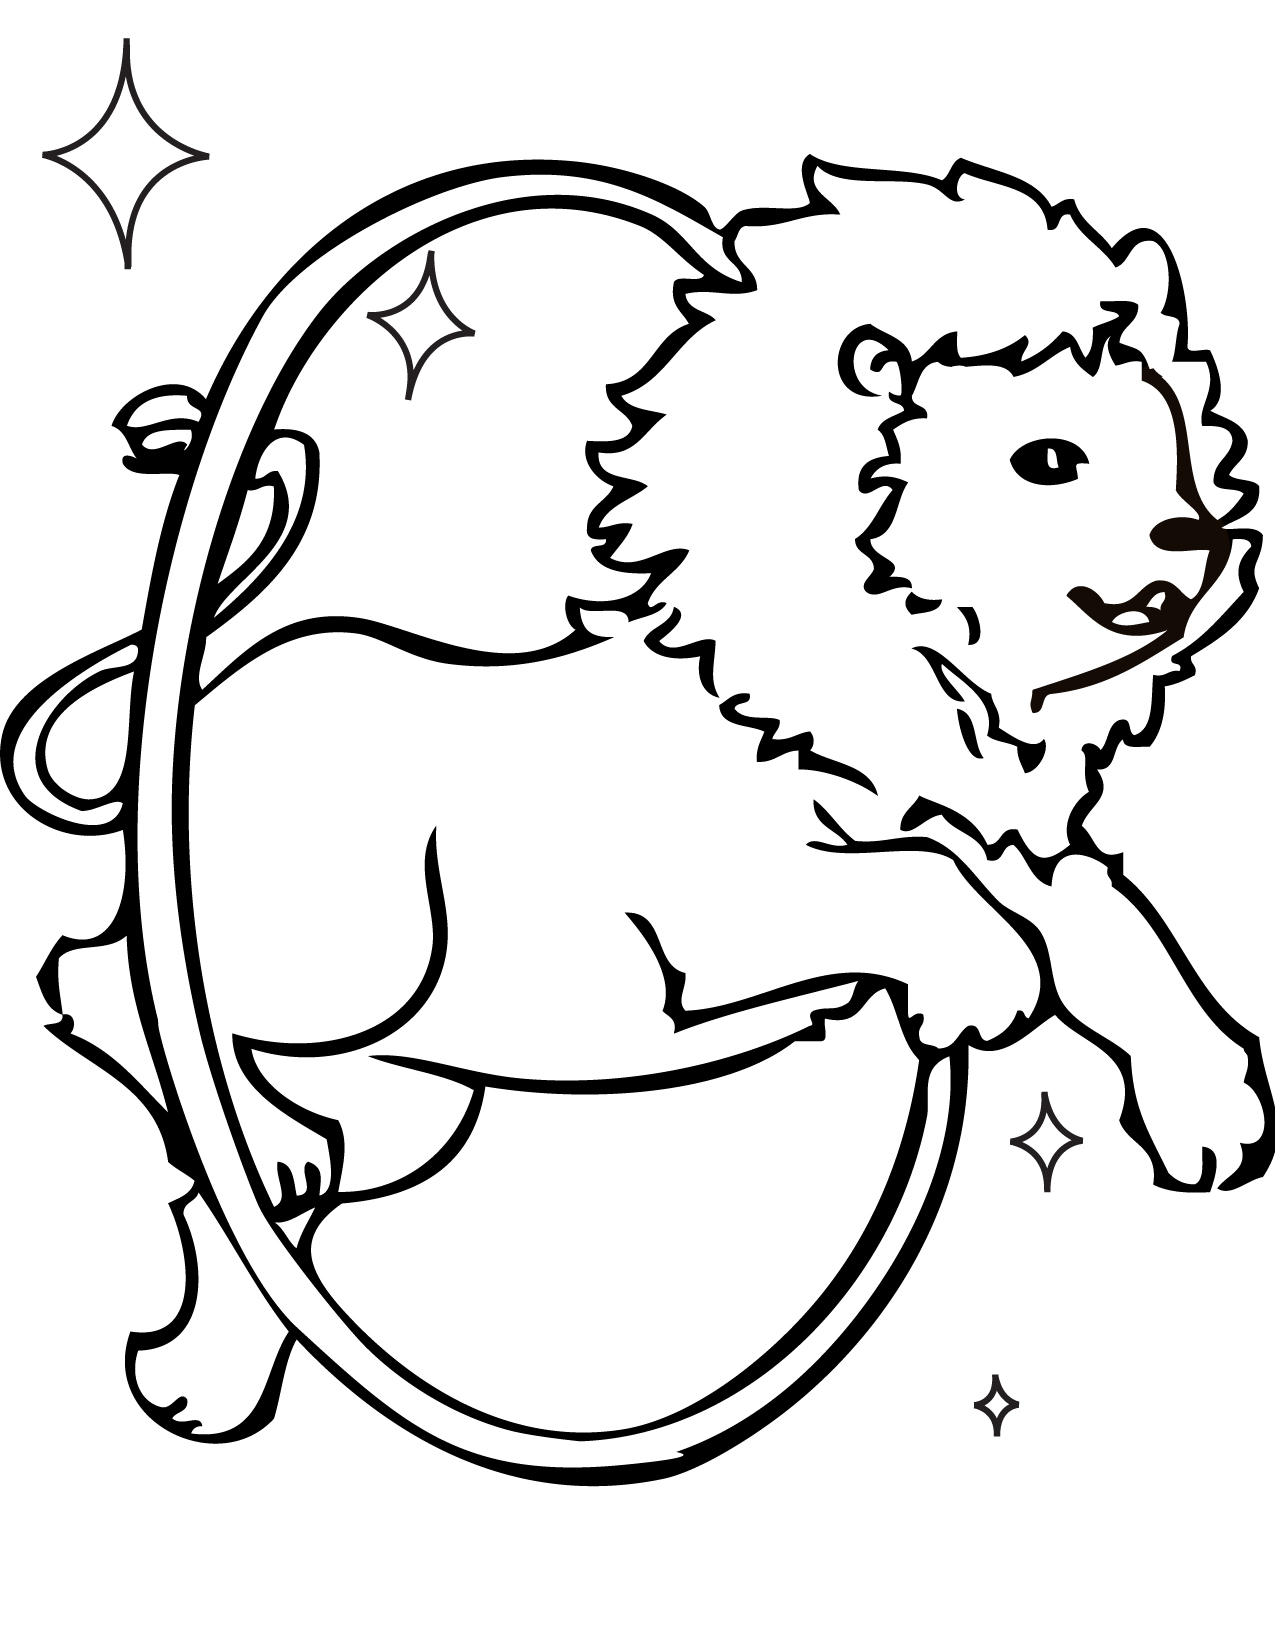 Printable Circus Coloring Pages Coloring Me Carnival Coloring Pages